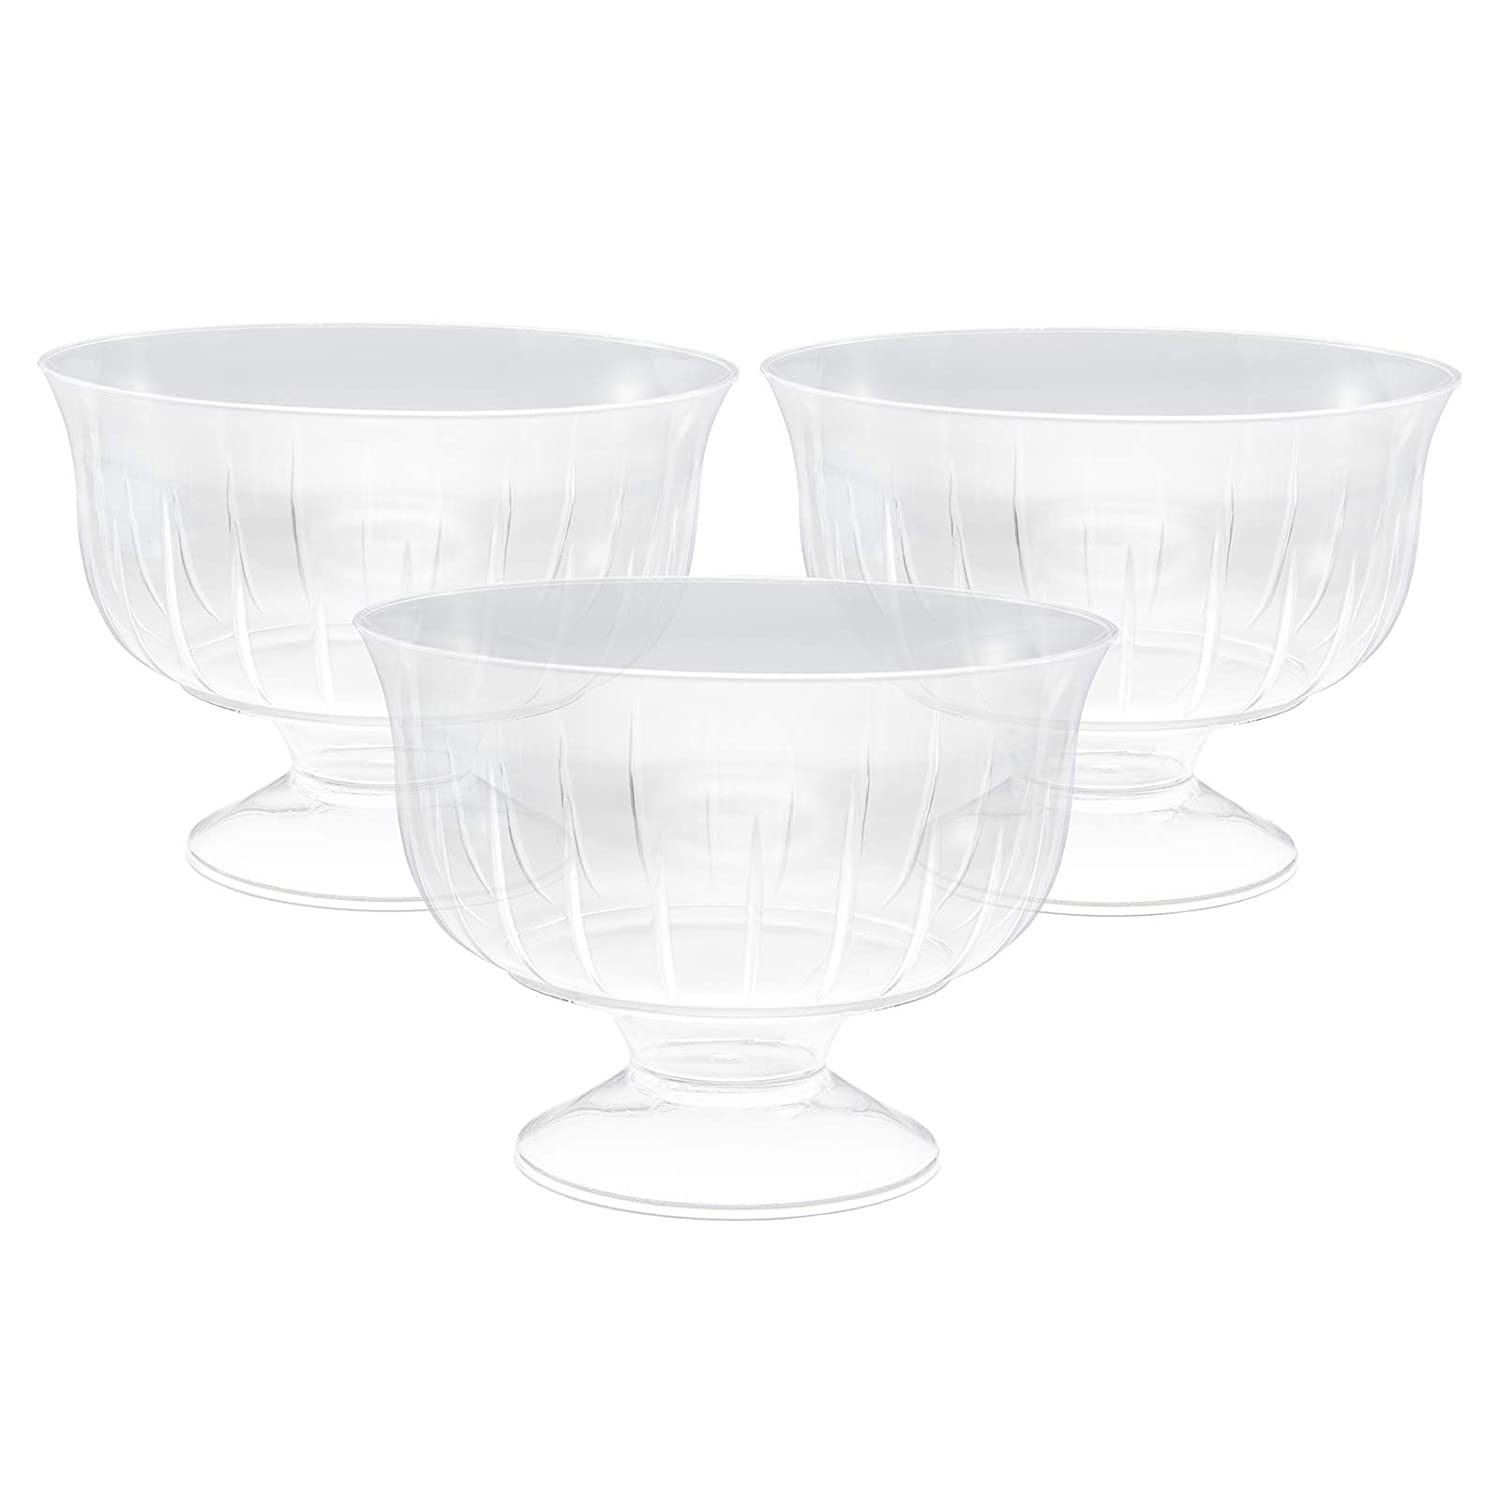 Clear Disposable Plastic Ice Cream Dessert Bowls/Dishes on Pedestal 30 Pack MASHERS